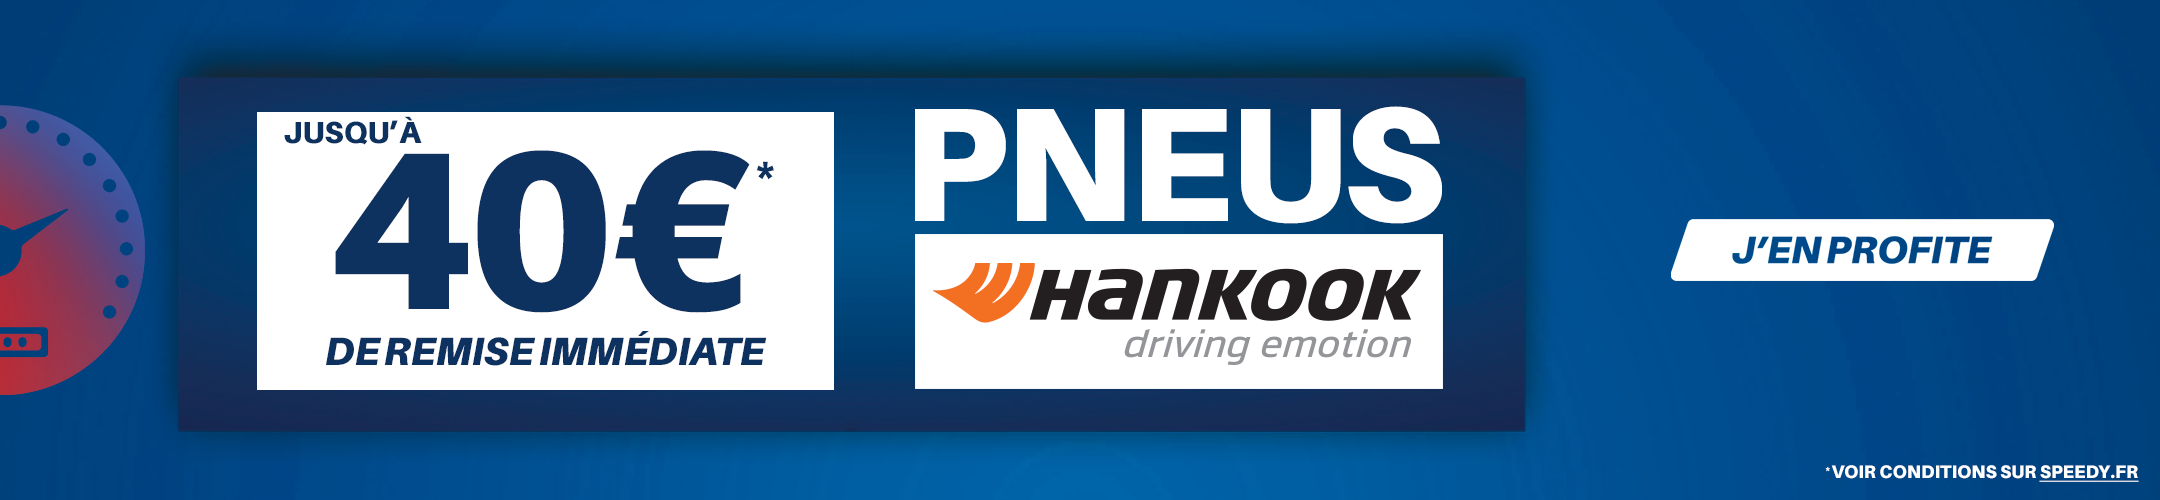 Promotion Speedy pneus Hankook